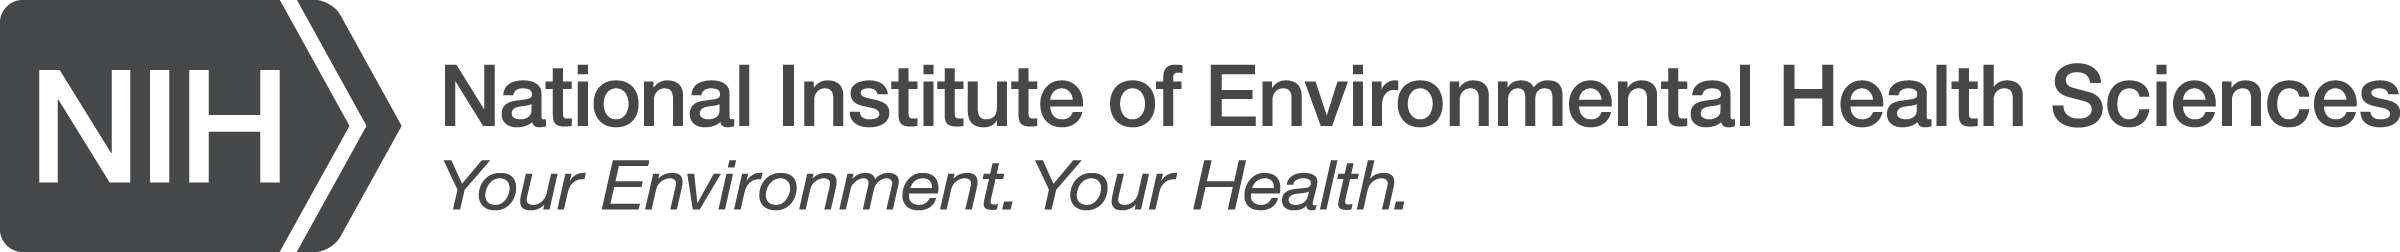 NIH - National Institute of Environmental Health Sciences - Your Environment. Your Health.